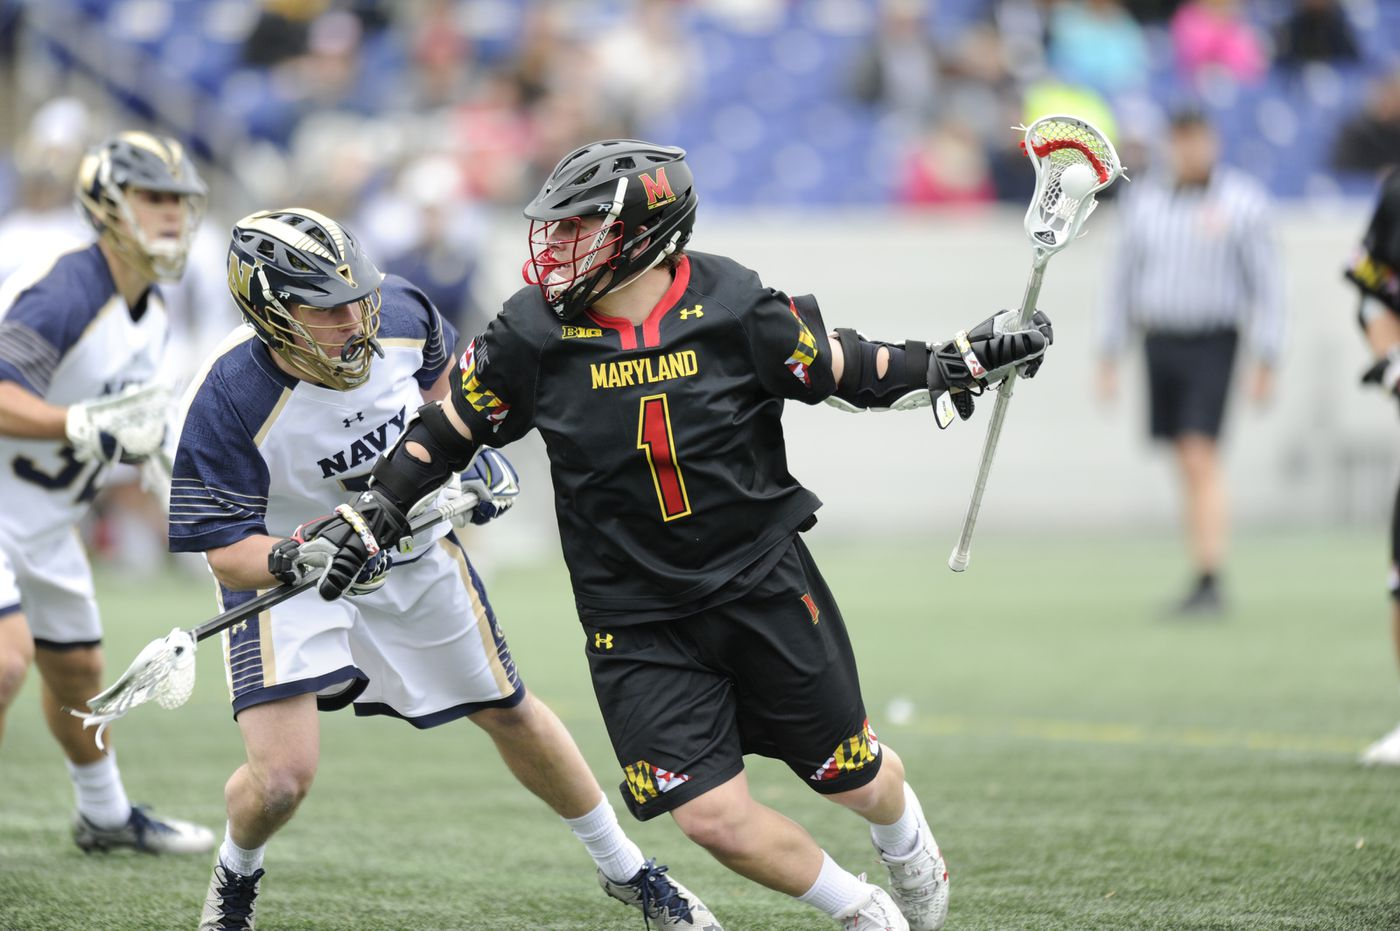 Philadelphia Wings' Matt Rambo brings his lacrosse journey full circle